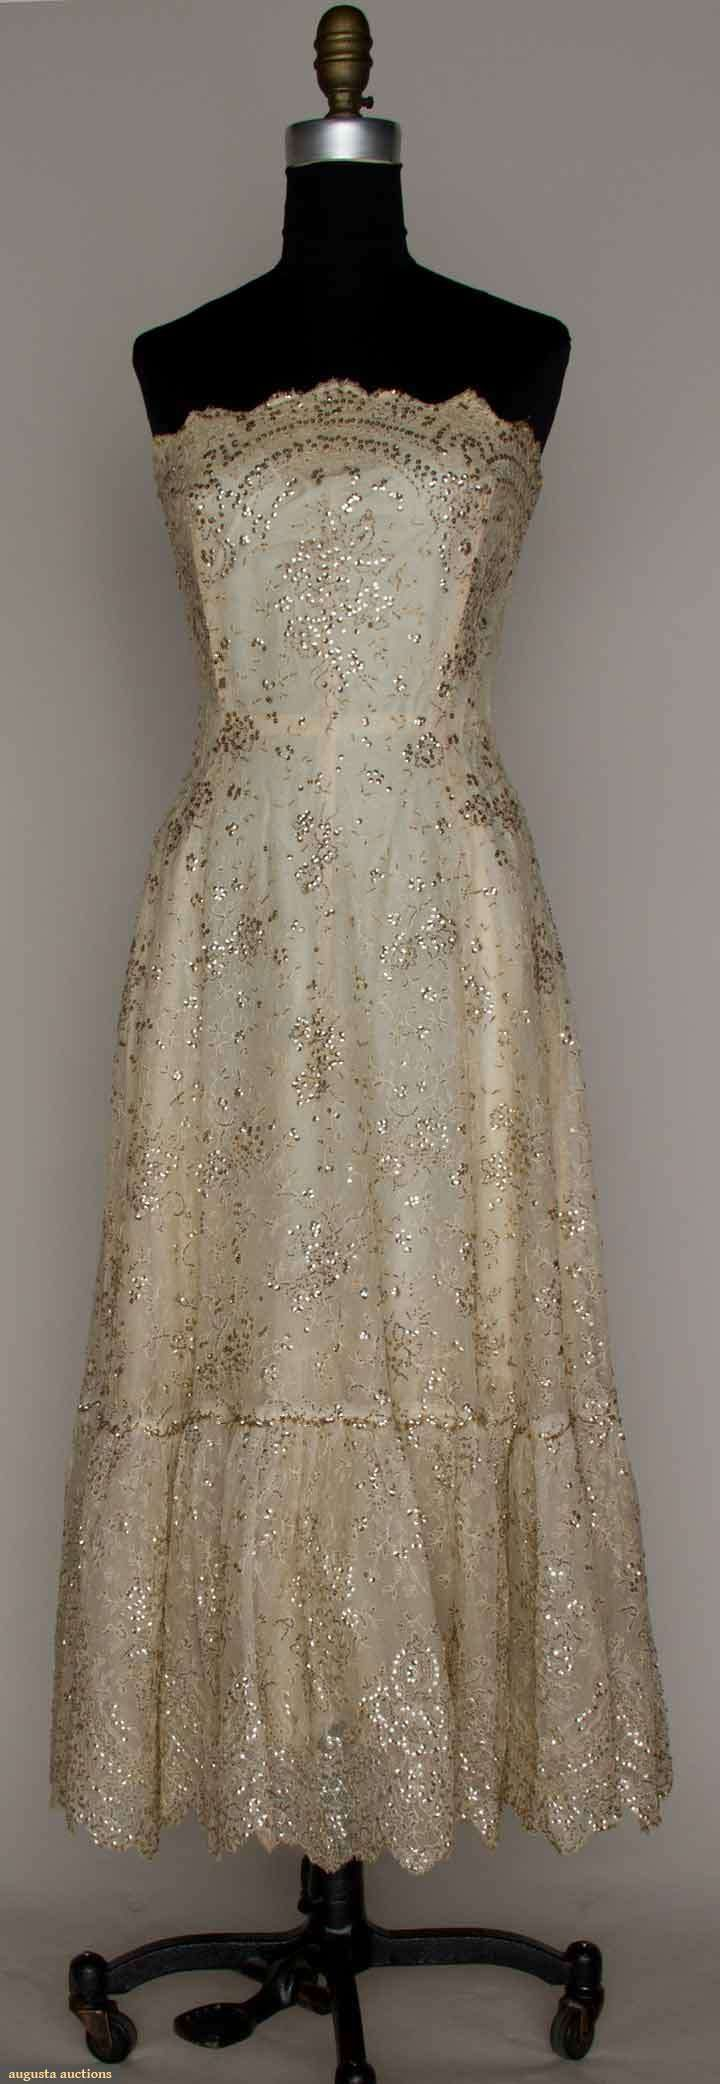 Amazing 1960 Evening Gowns Gift - Wedding and flowers ispiration ...